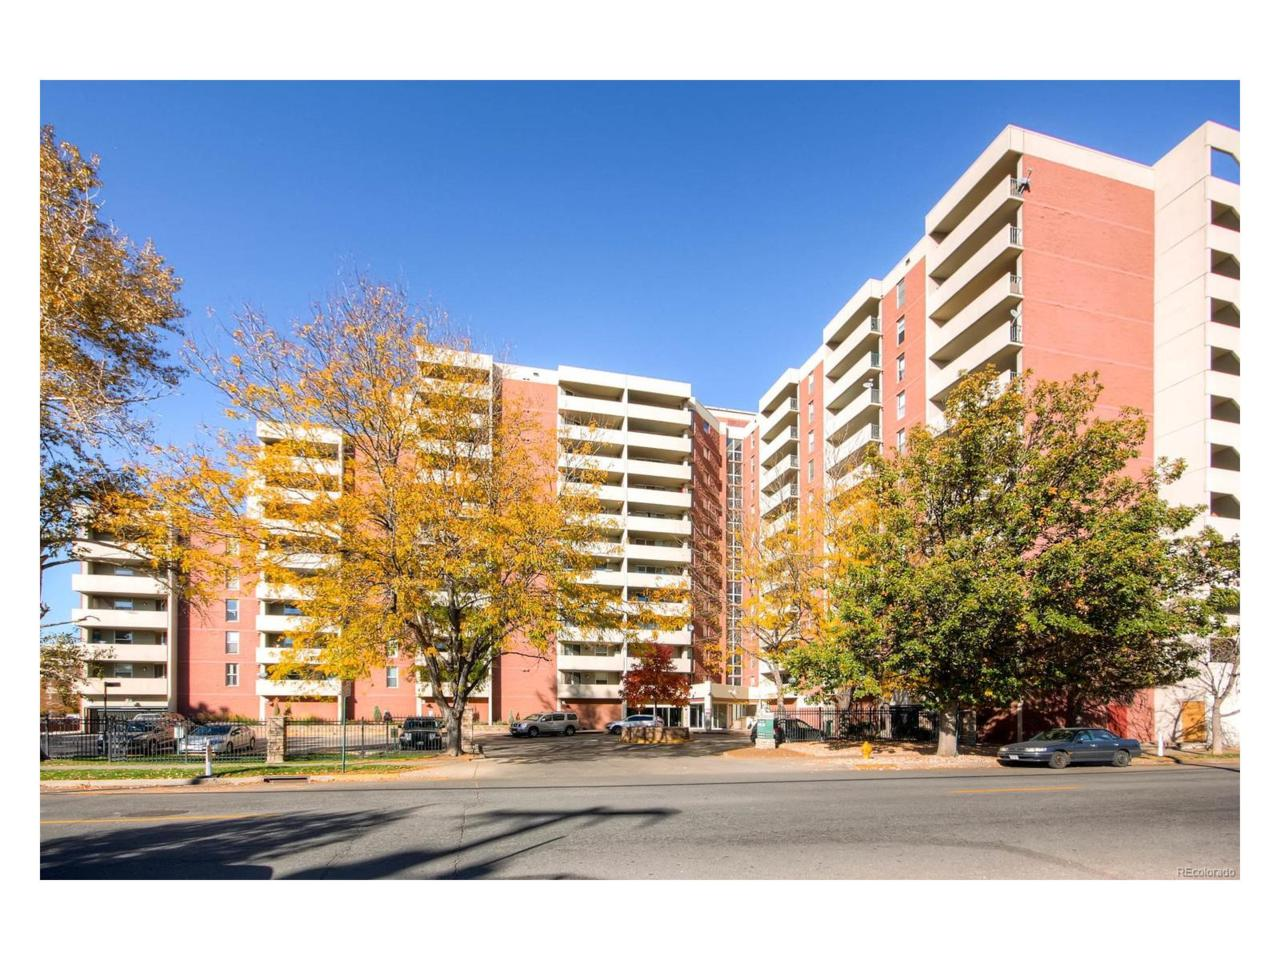 601 W 11th Avenue #522, Denver, CO 80204 (MLS #7628944) :: 8z Real Estate